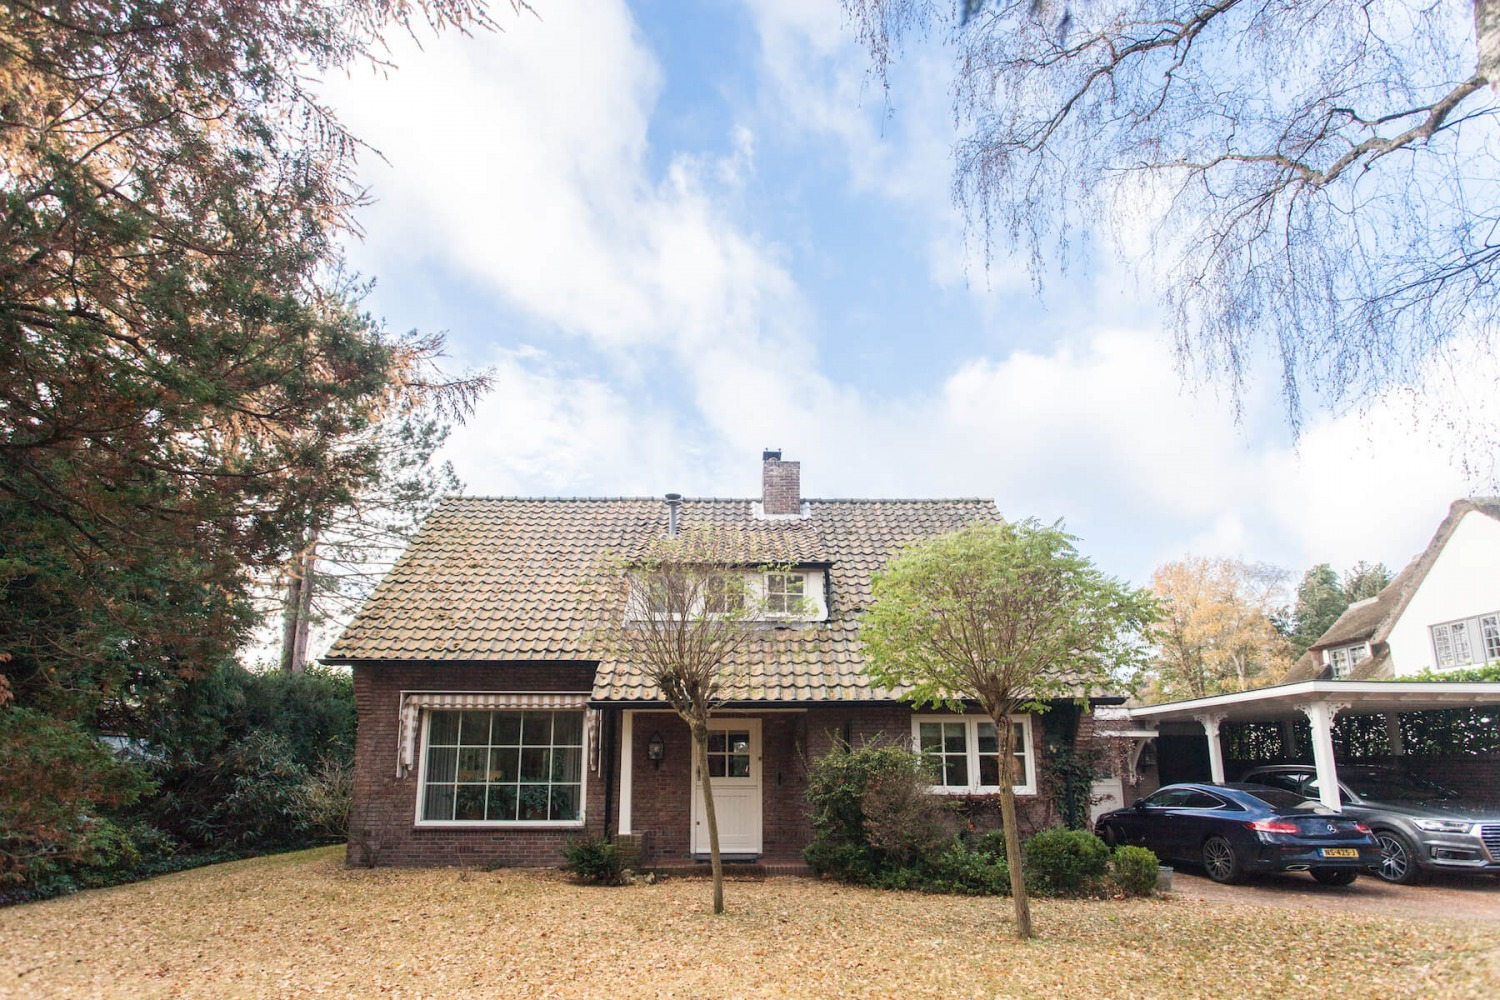 architect private family house The Netherlands old situation